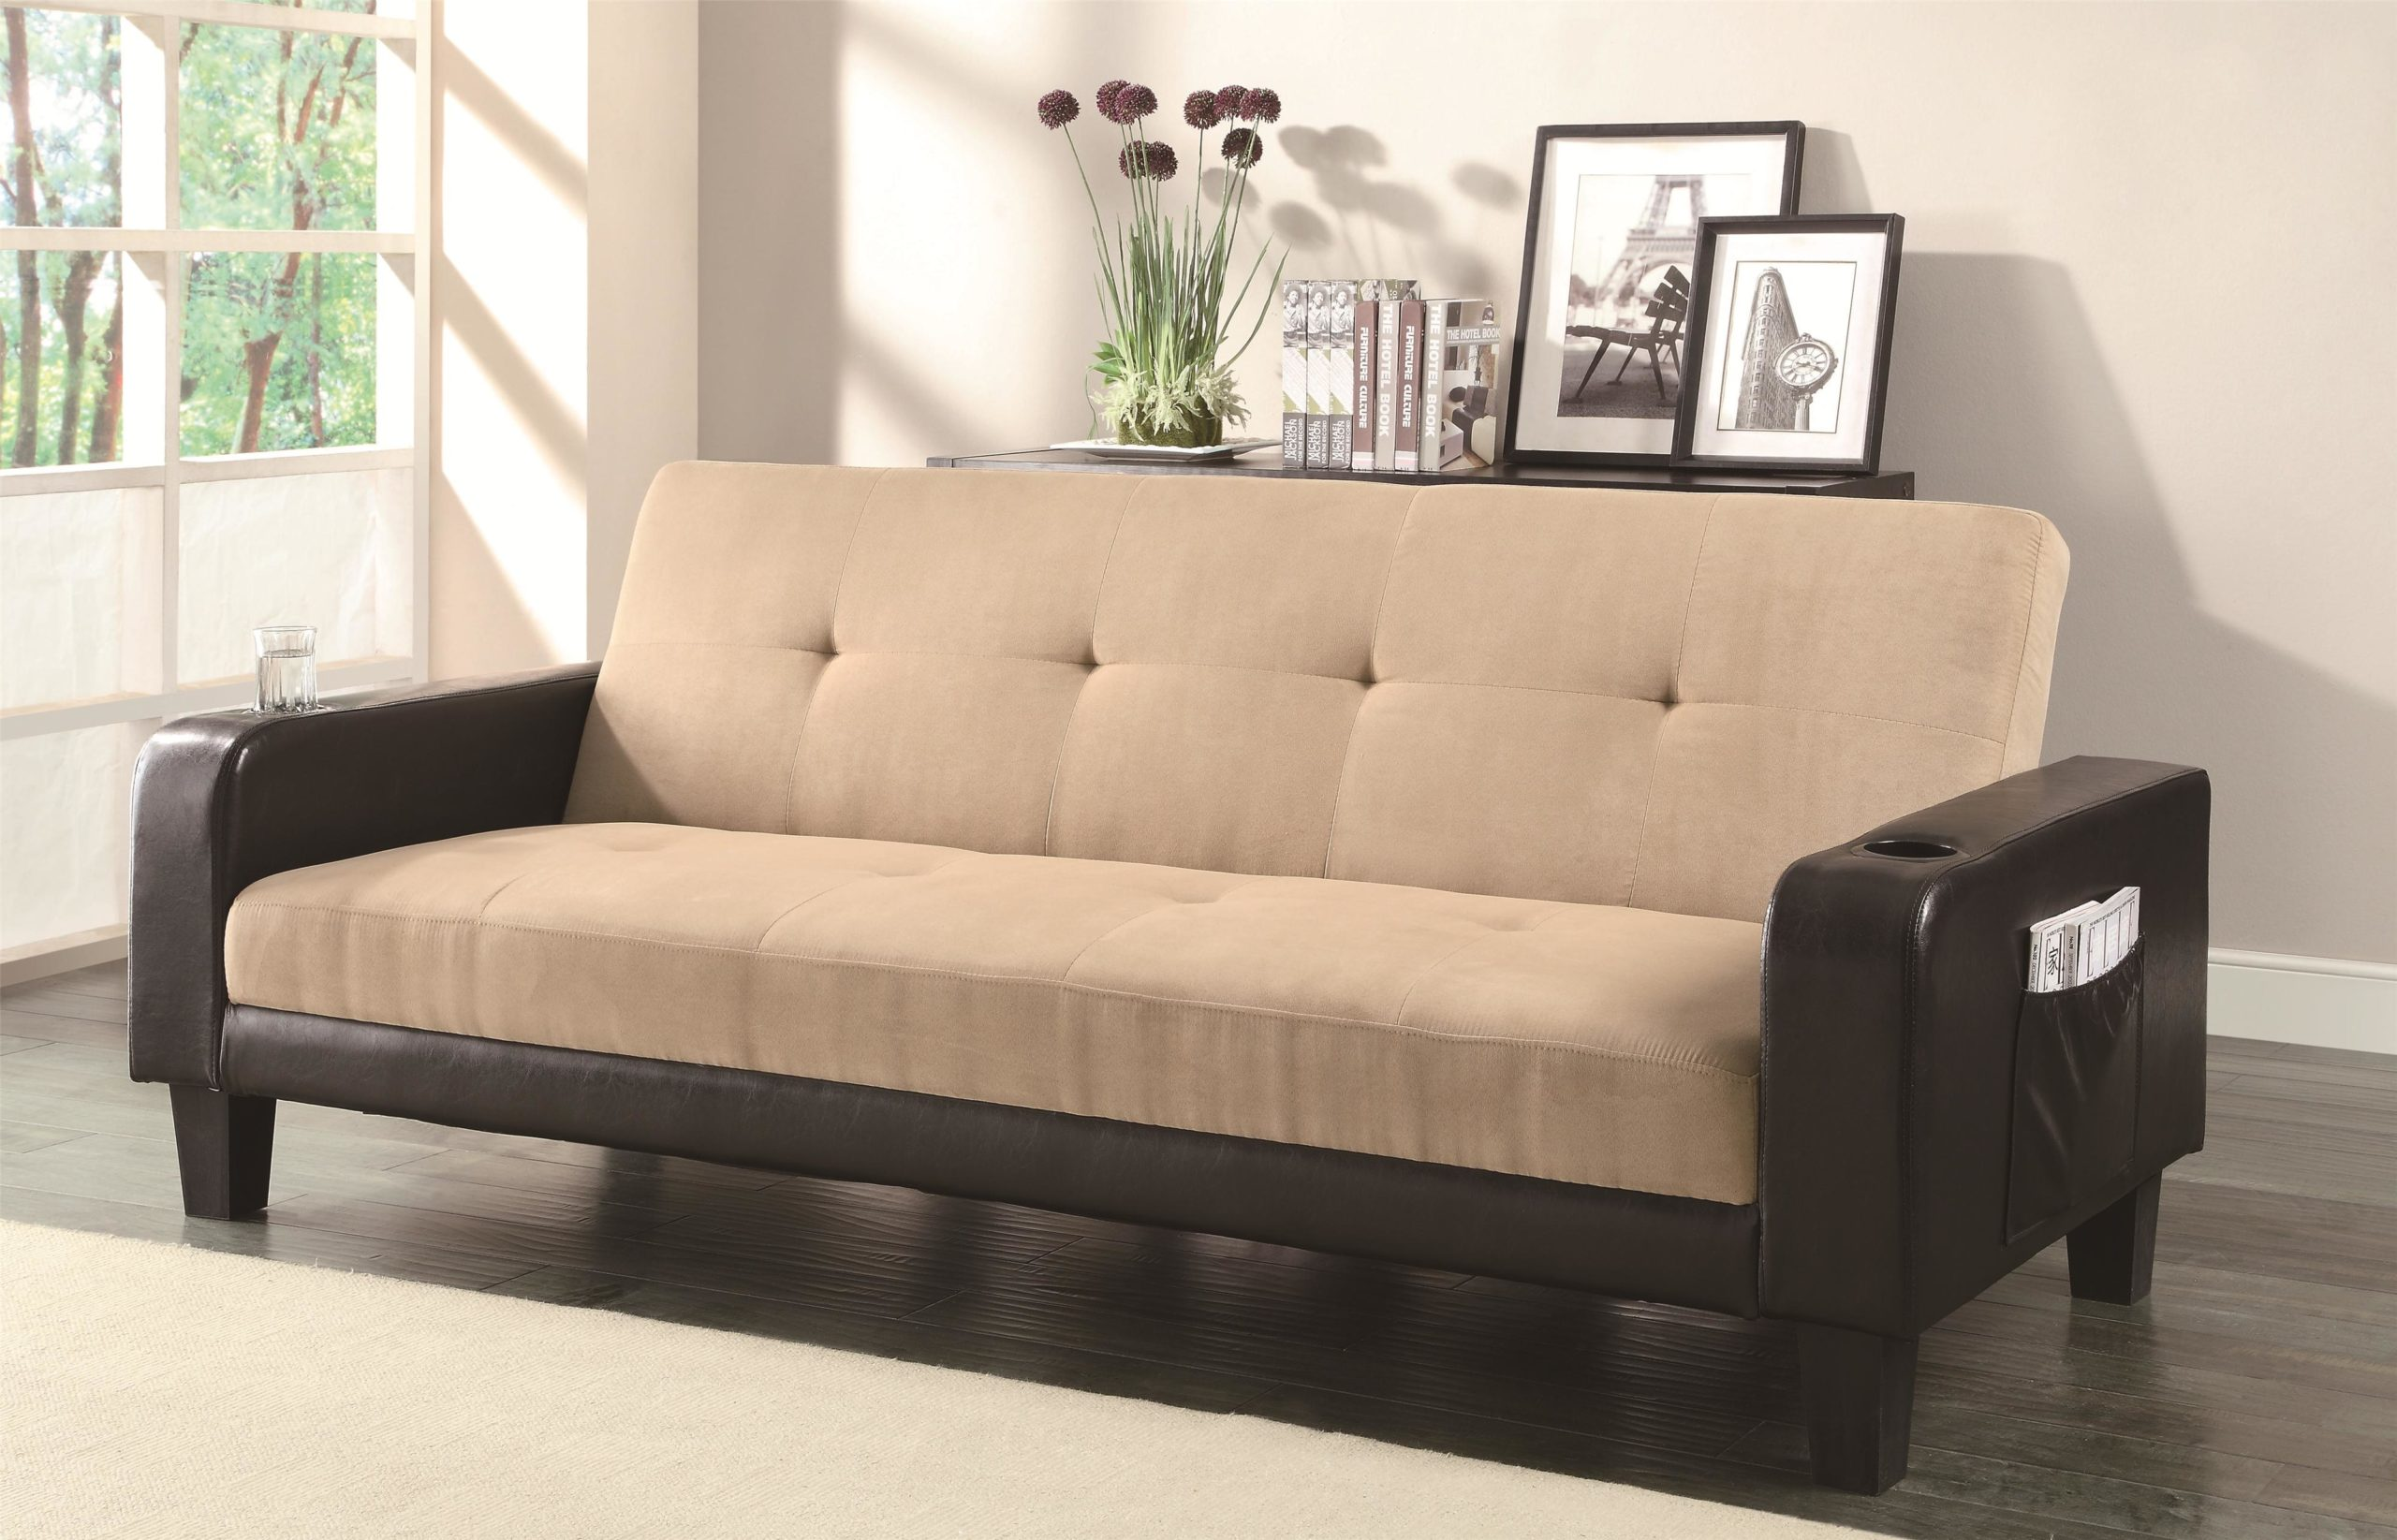 Contemporary Adjustable Sofa with Cup Holders and Magazine Storage in Up Position